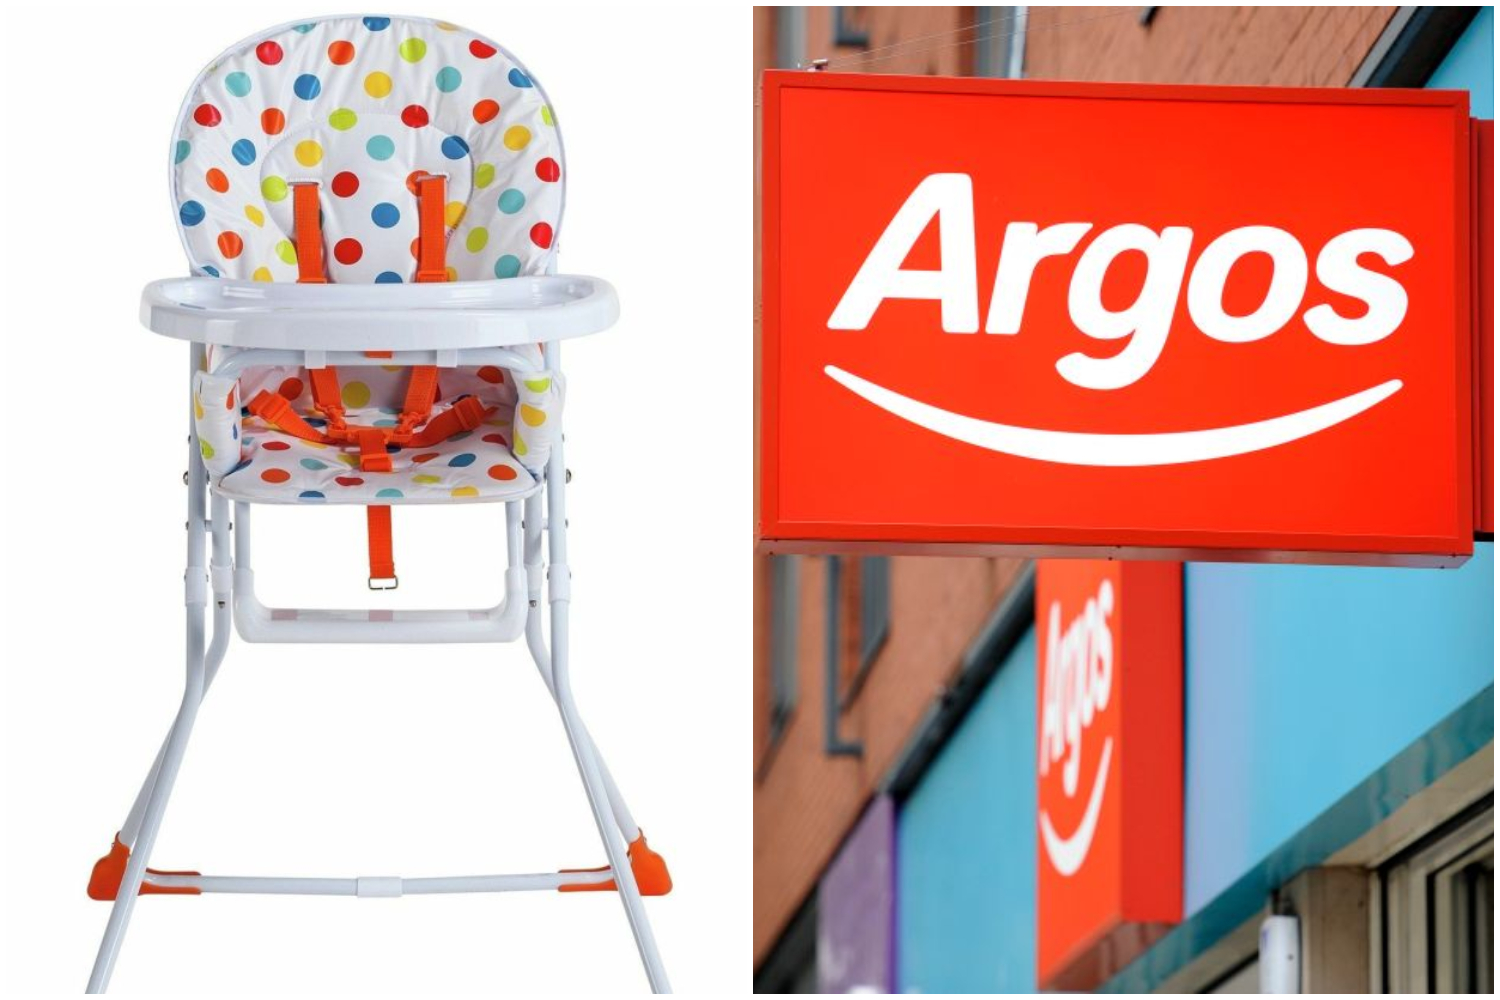 Baby Chairs Argos Argos Ireland Recalls High Chair Over Safety Fears It Could